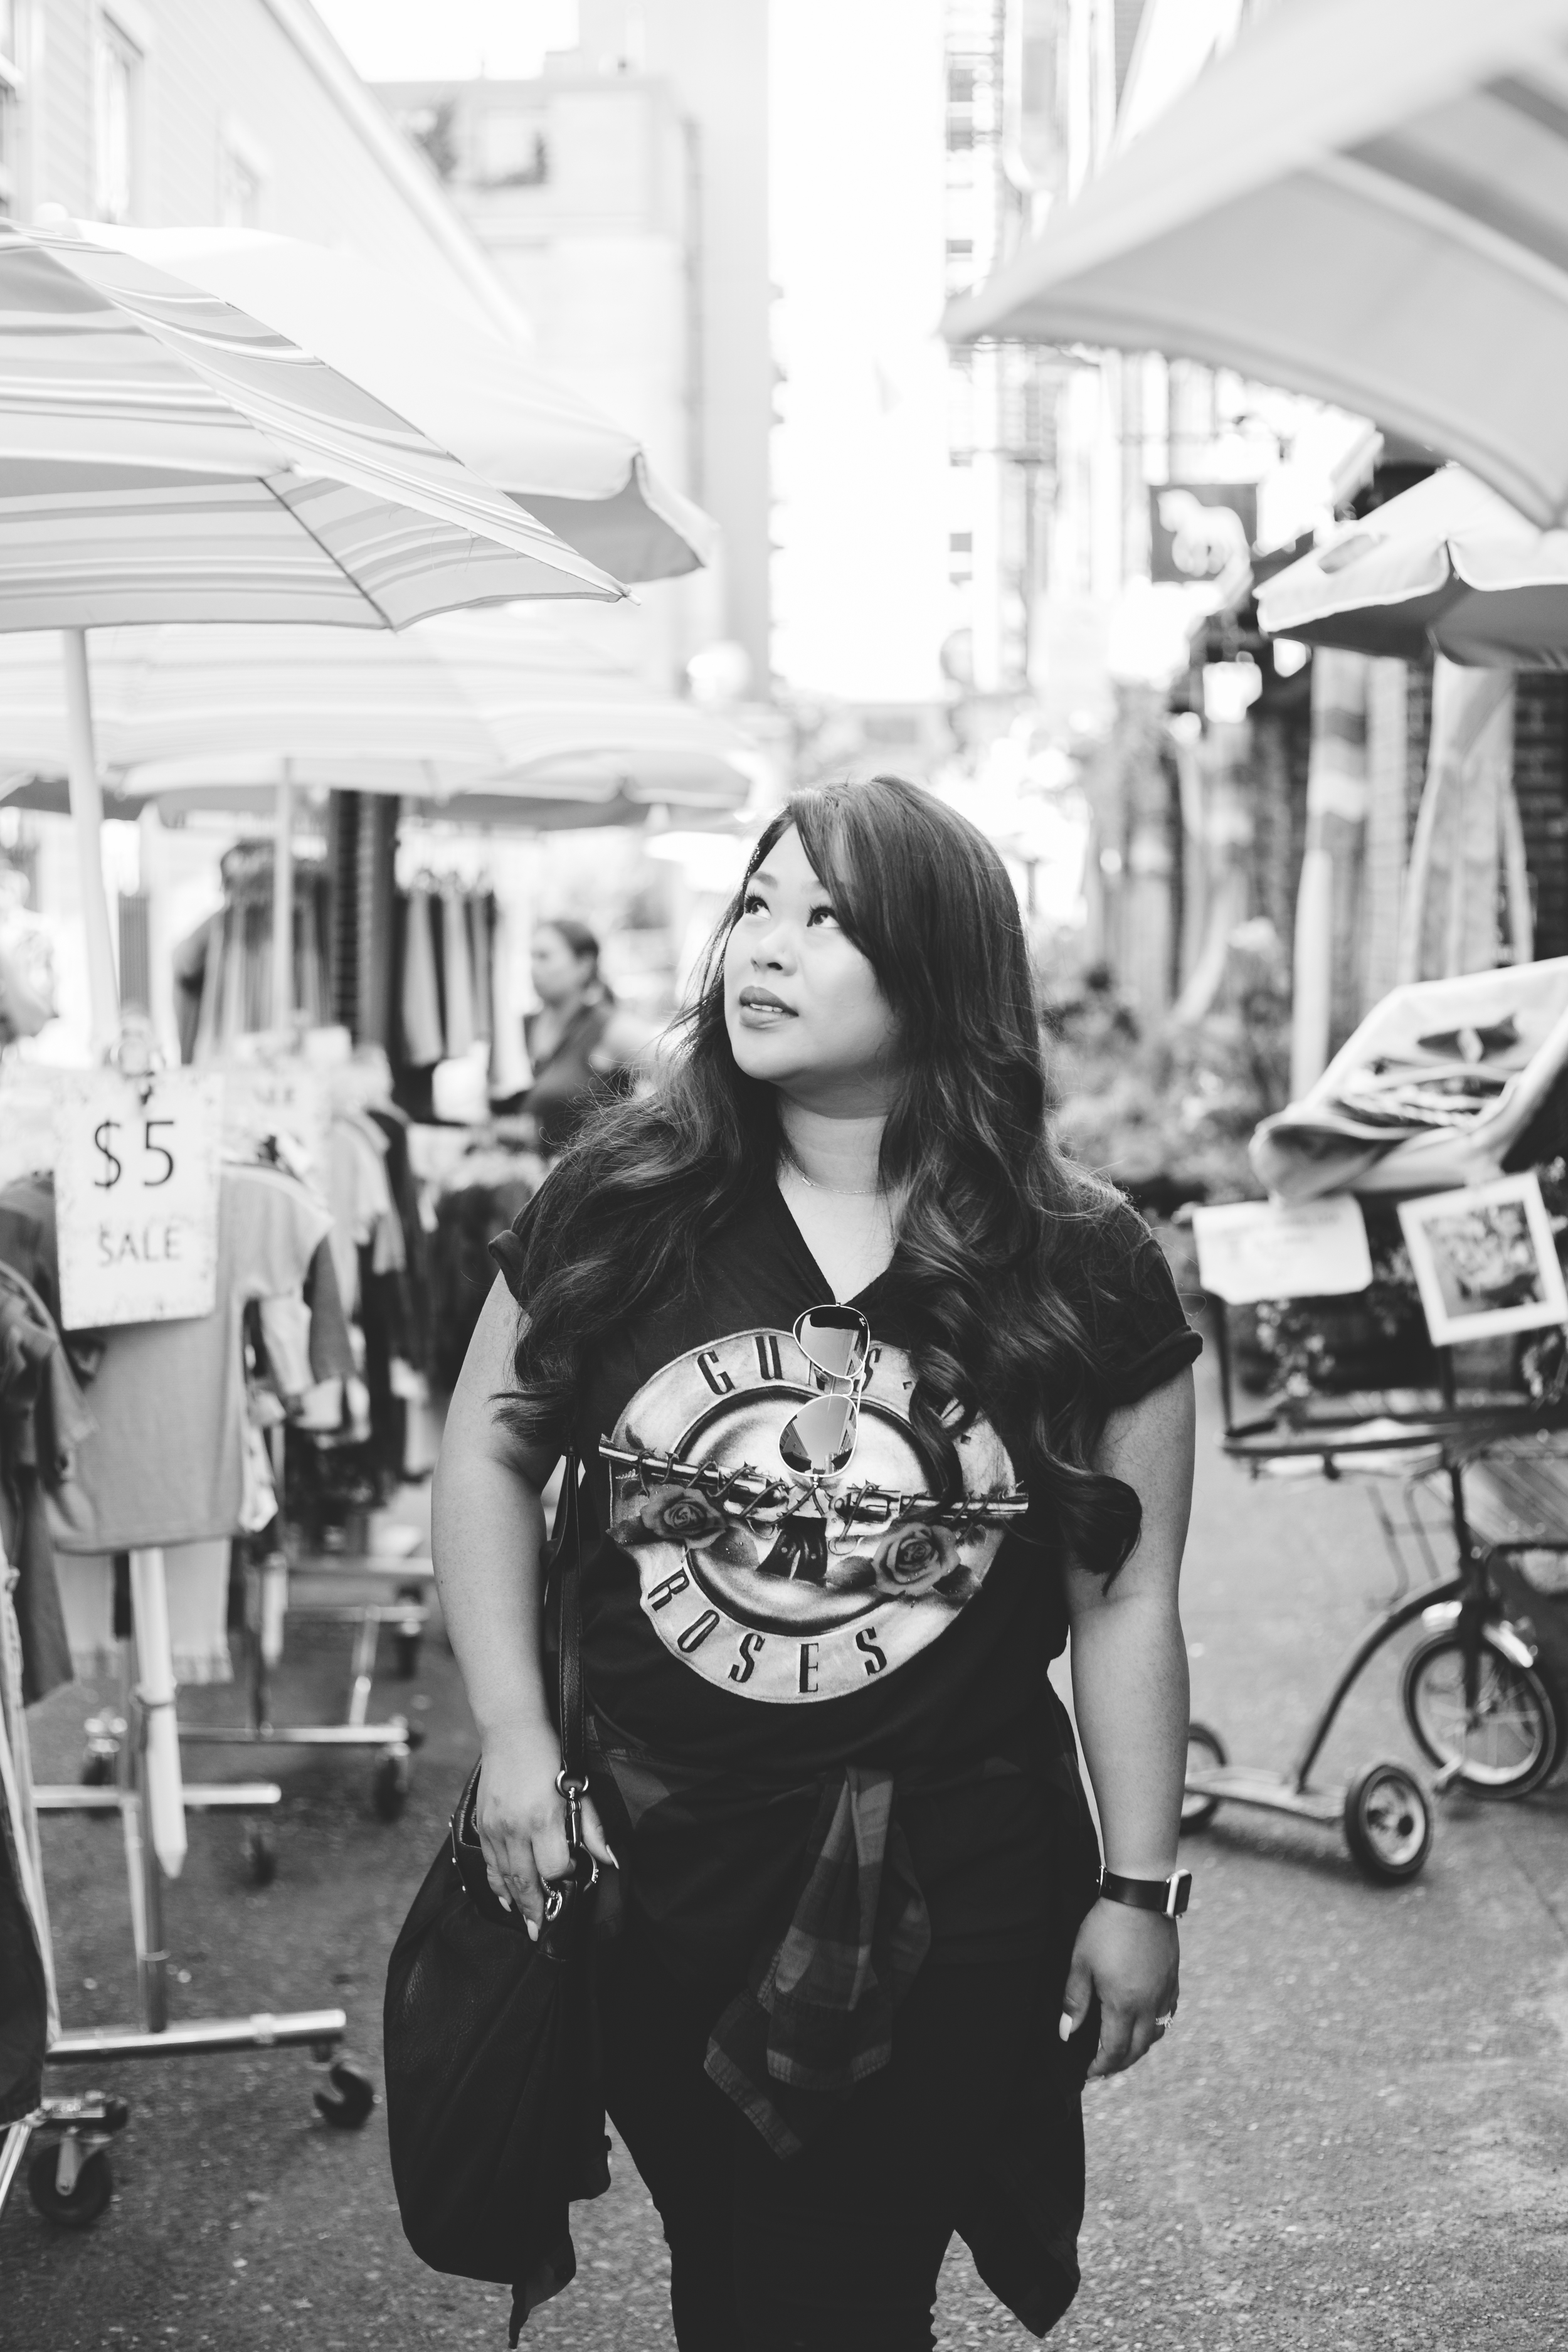 Classic black & white portrait amidst a crowded alleyway street vendor.